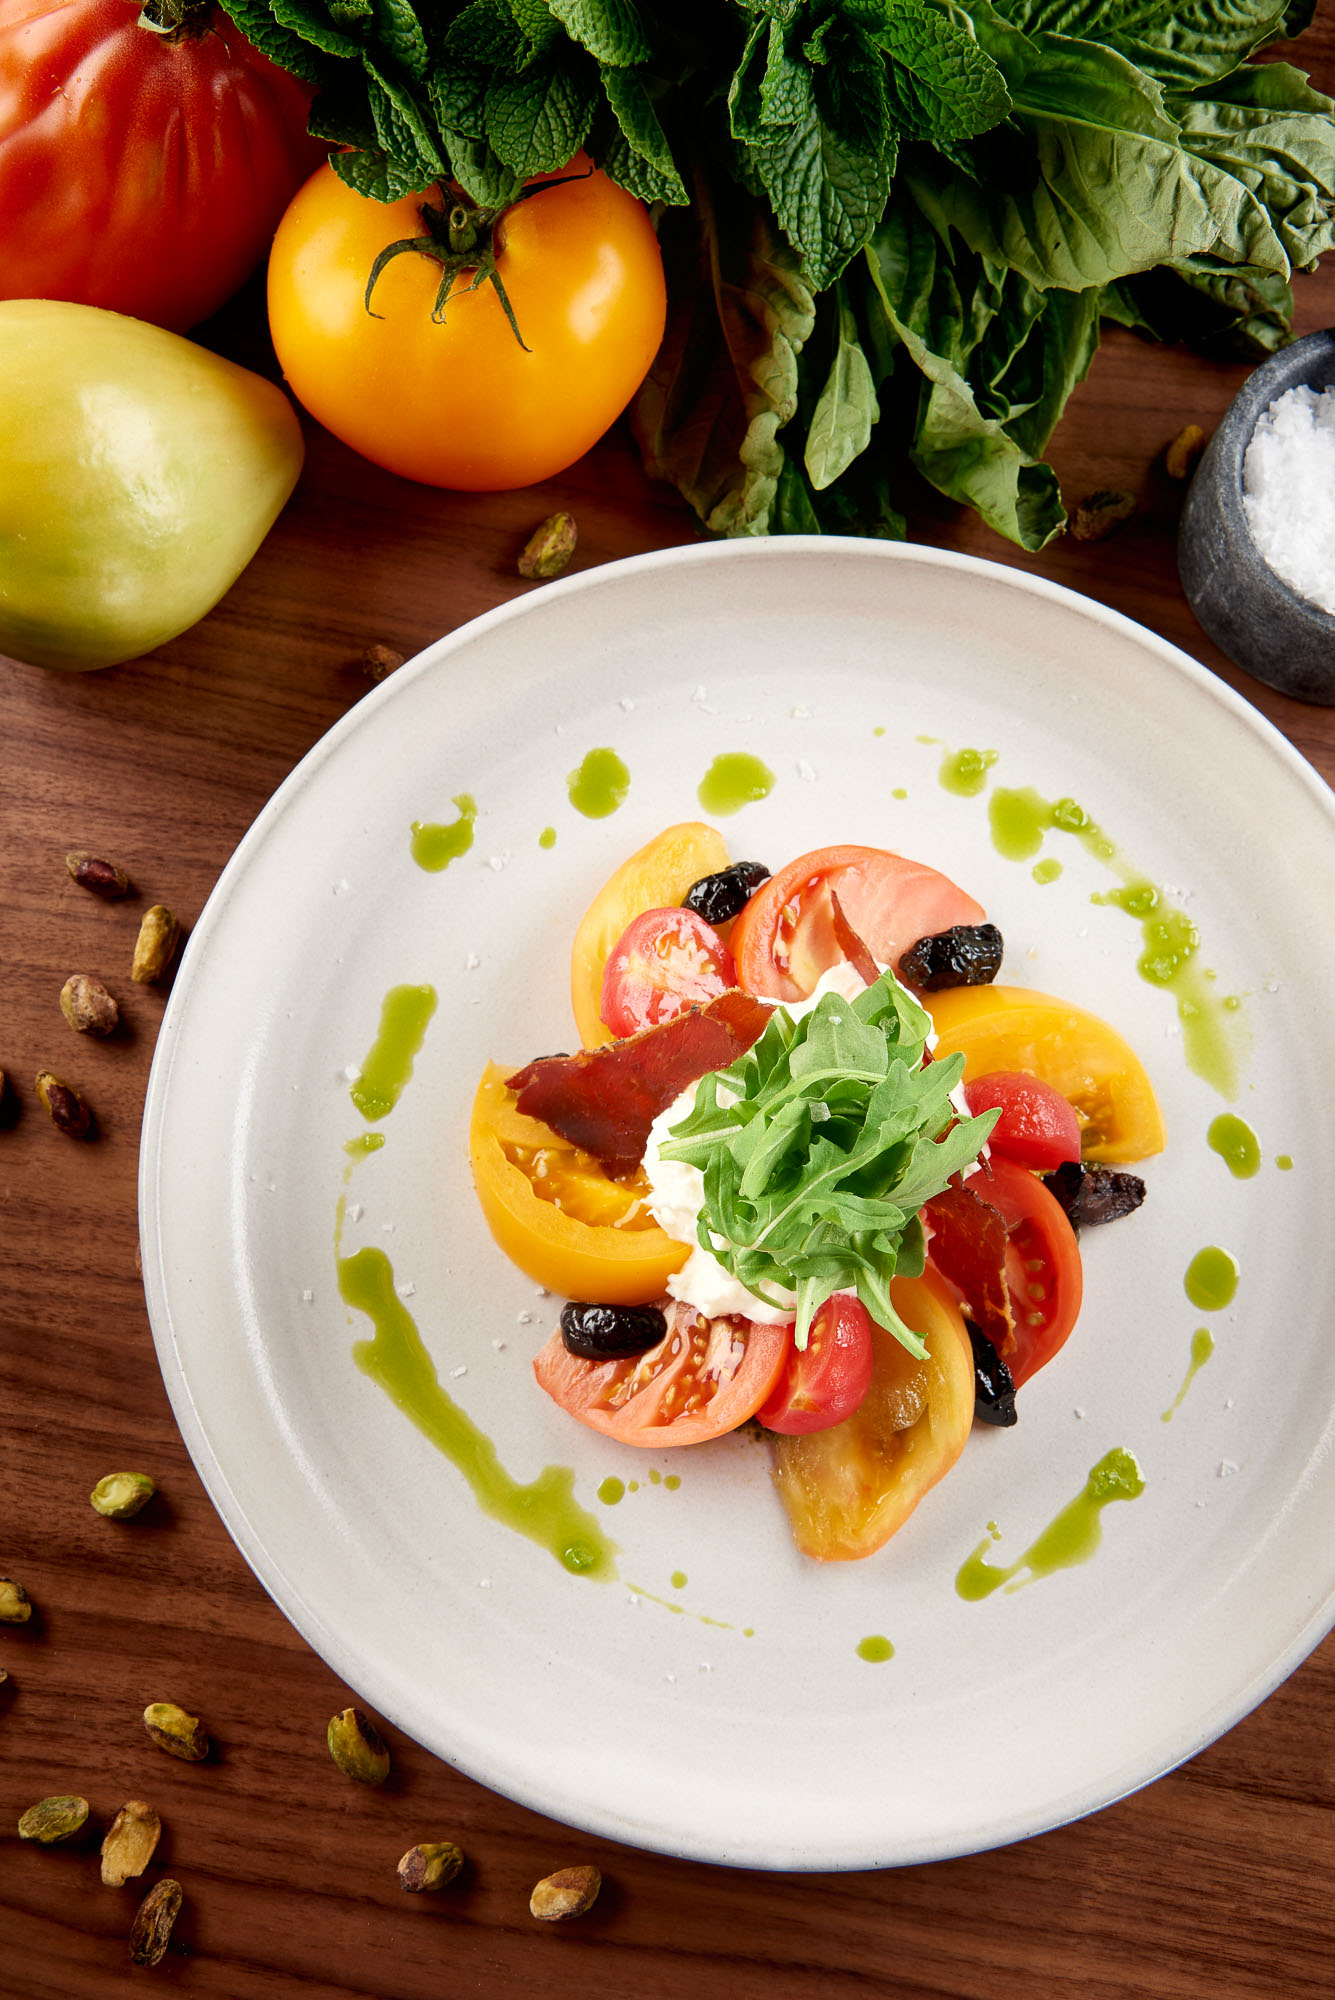 Copy of Heirloom Tomatoes & Burrata